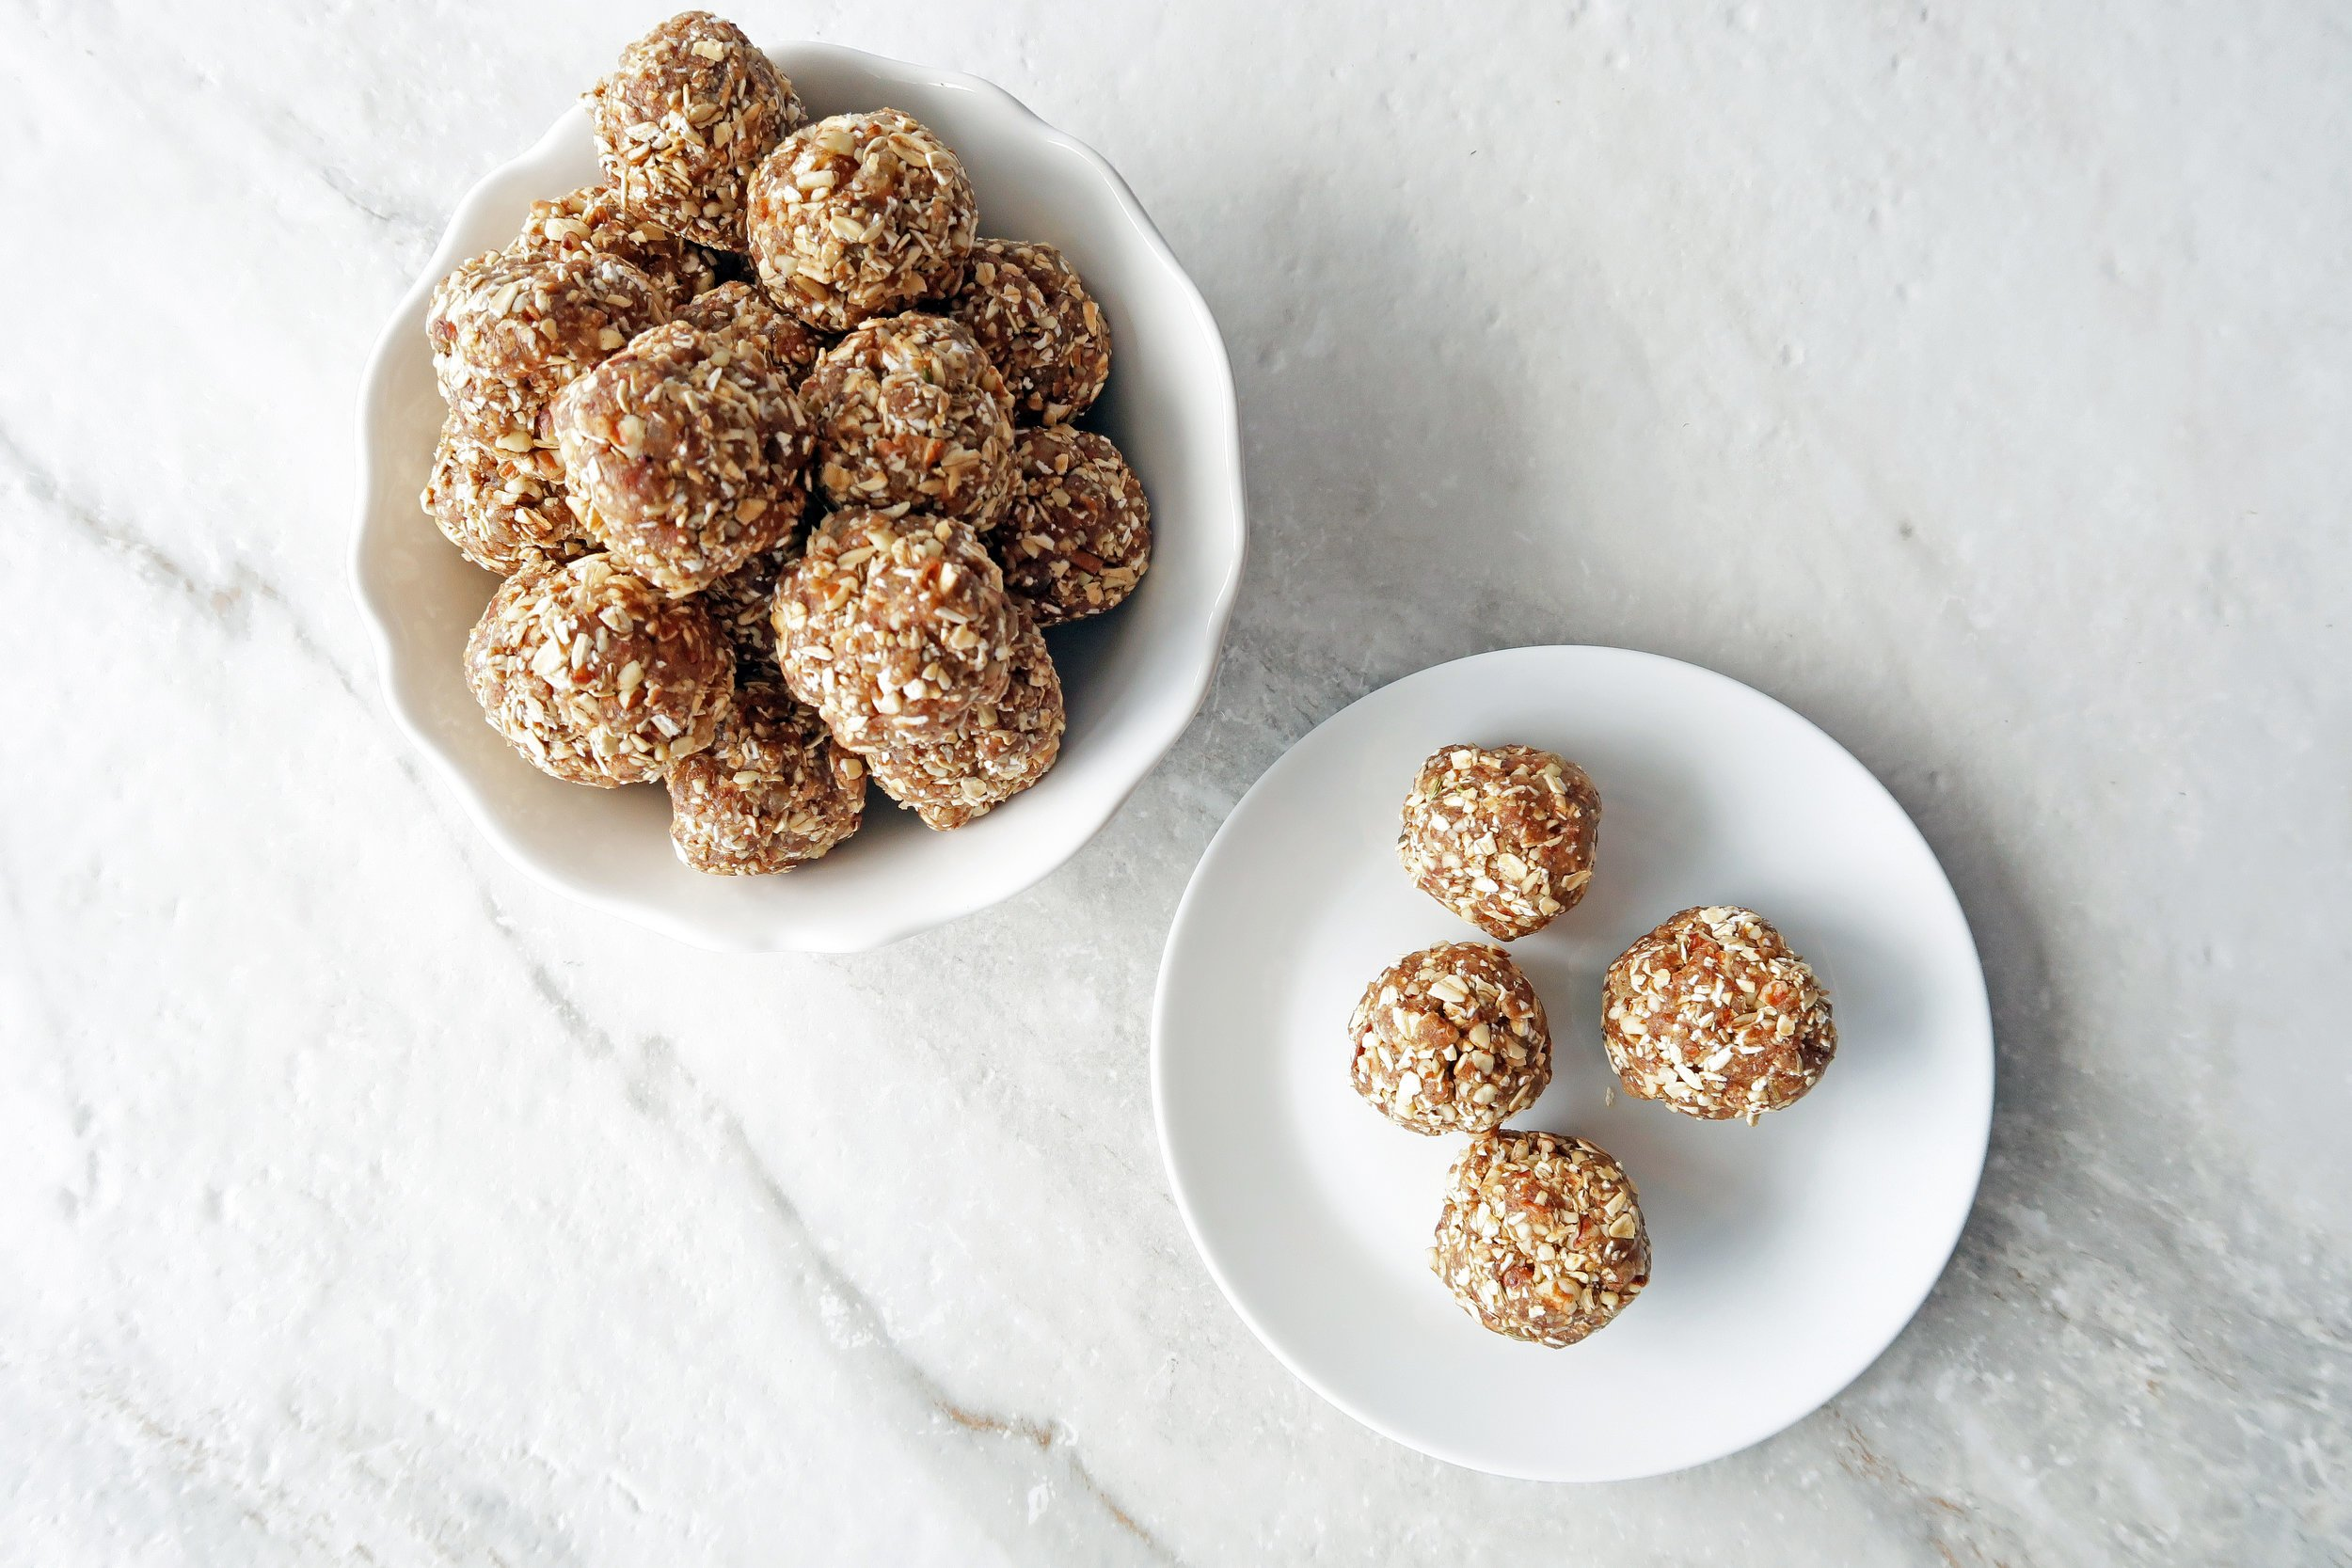 No Bake Chai Spiced Date Energy Balls piled in a white bowl with four energy balls on a white plate to its side.